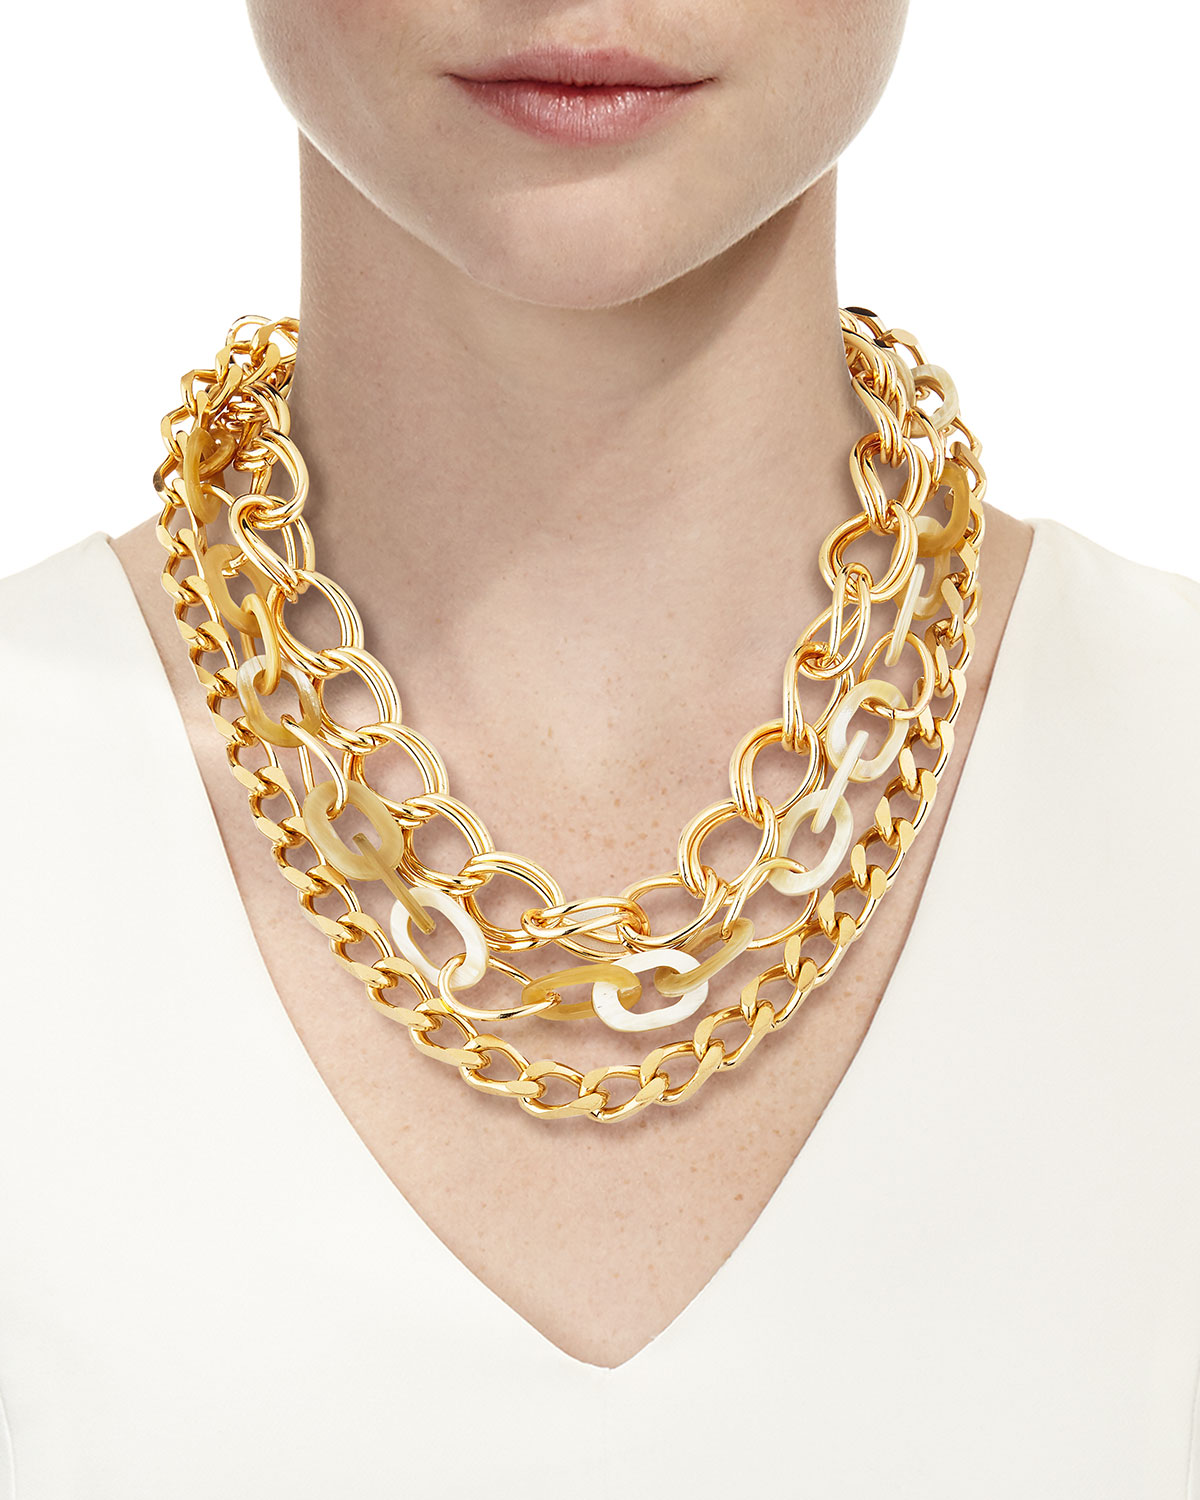 Chain & Horn 3 Strand Necklace, White by Akola